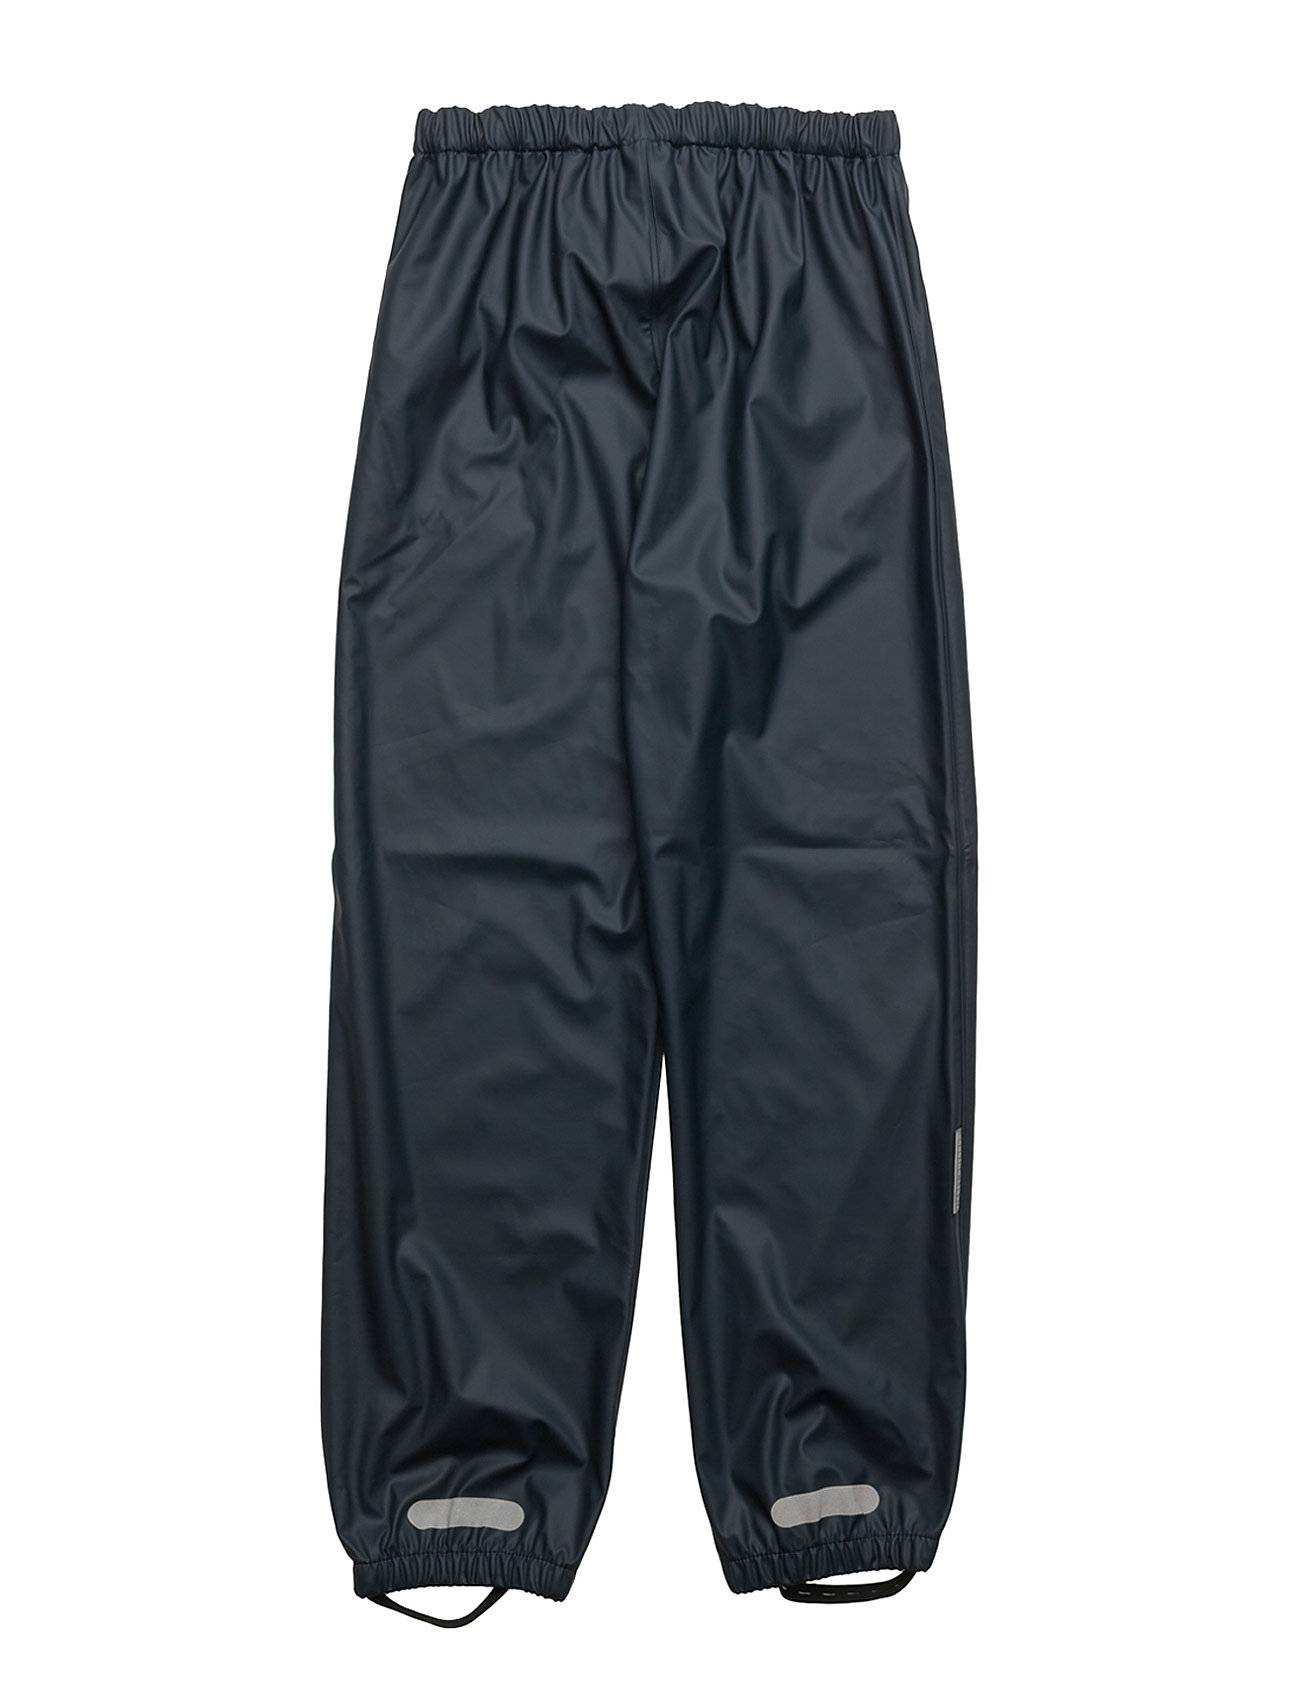 Ticket to Heaven Rain Pant Authentic Rubber